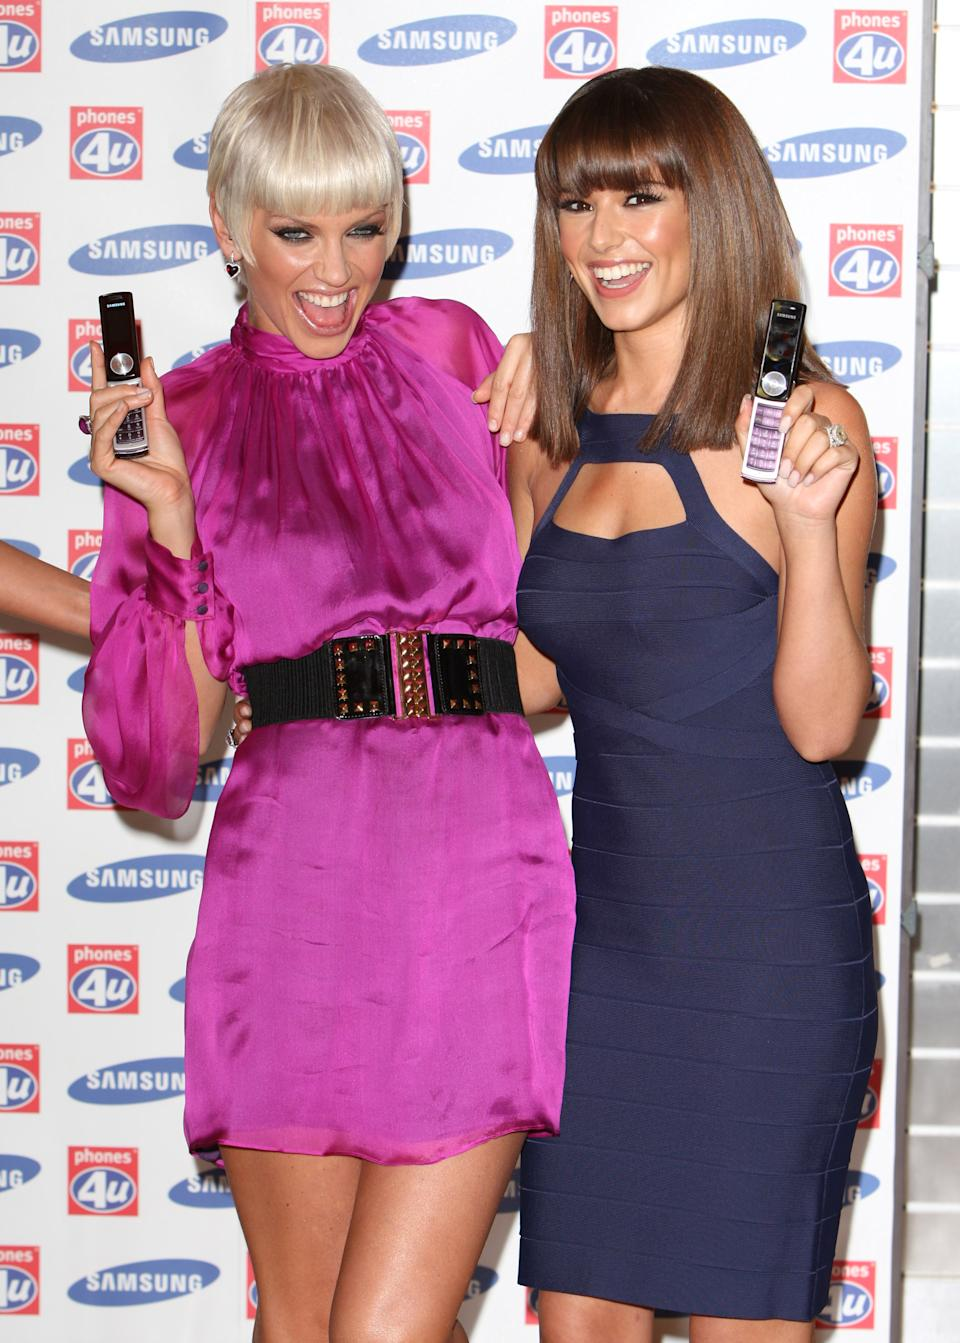 Sarah Harding and Cheryl Cole from Girls Aloud launches of the Samsung F210 Purple phone, at Phones 4U on Oxford Street, central London.